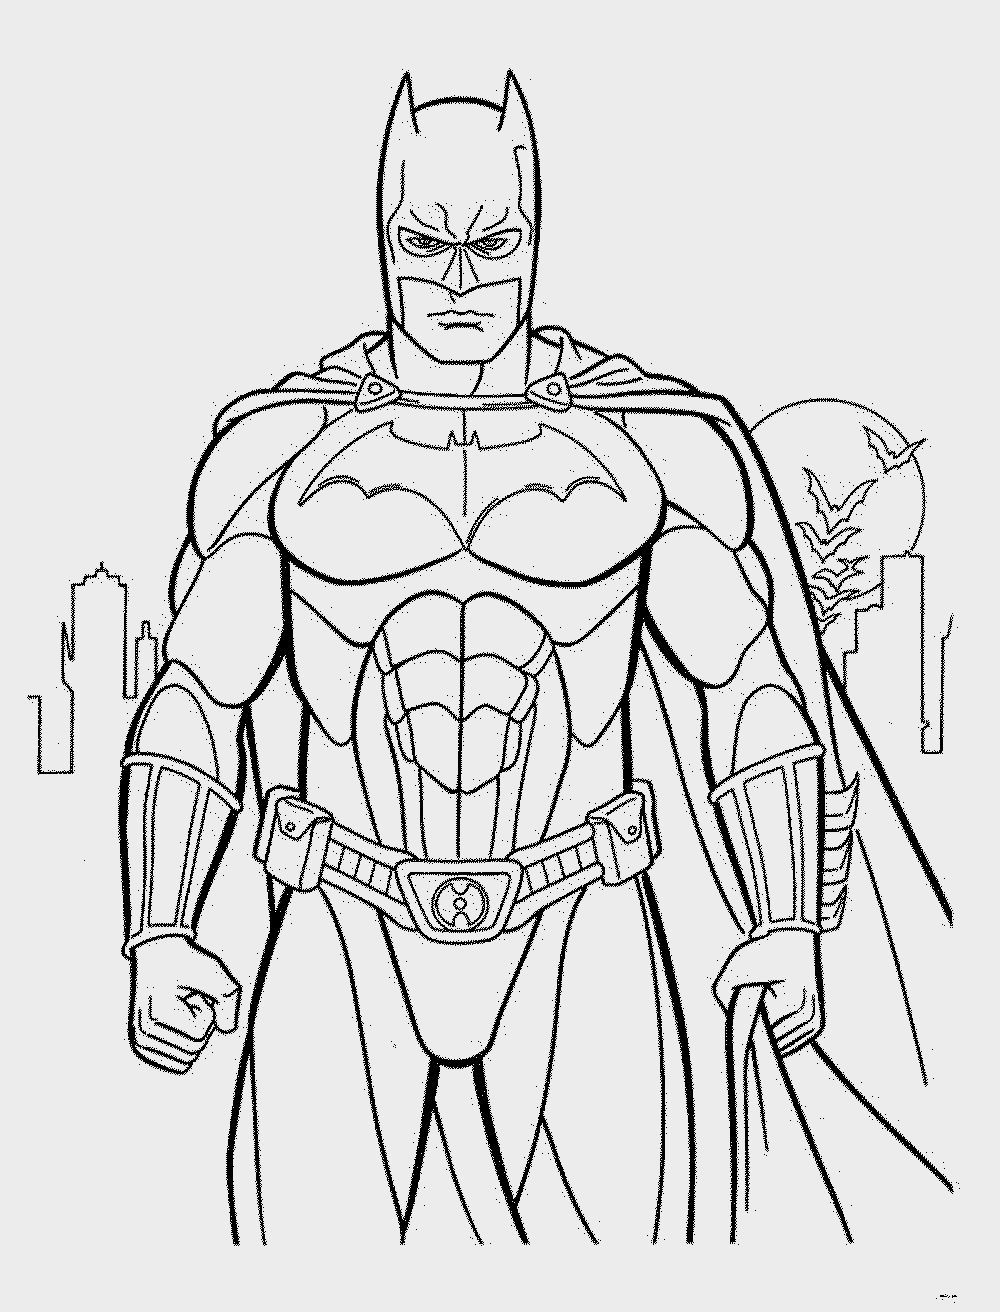 Batman Coloring Pages Wallfree 100 Free High Definition Wallpaper High Definition Back Superhero Coloring Pages Superhero Coloring Superman Coloring Pages